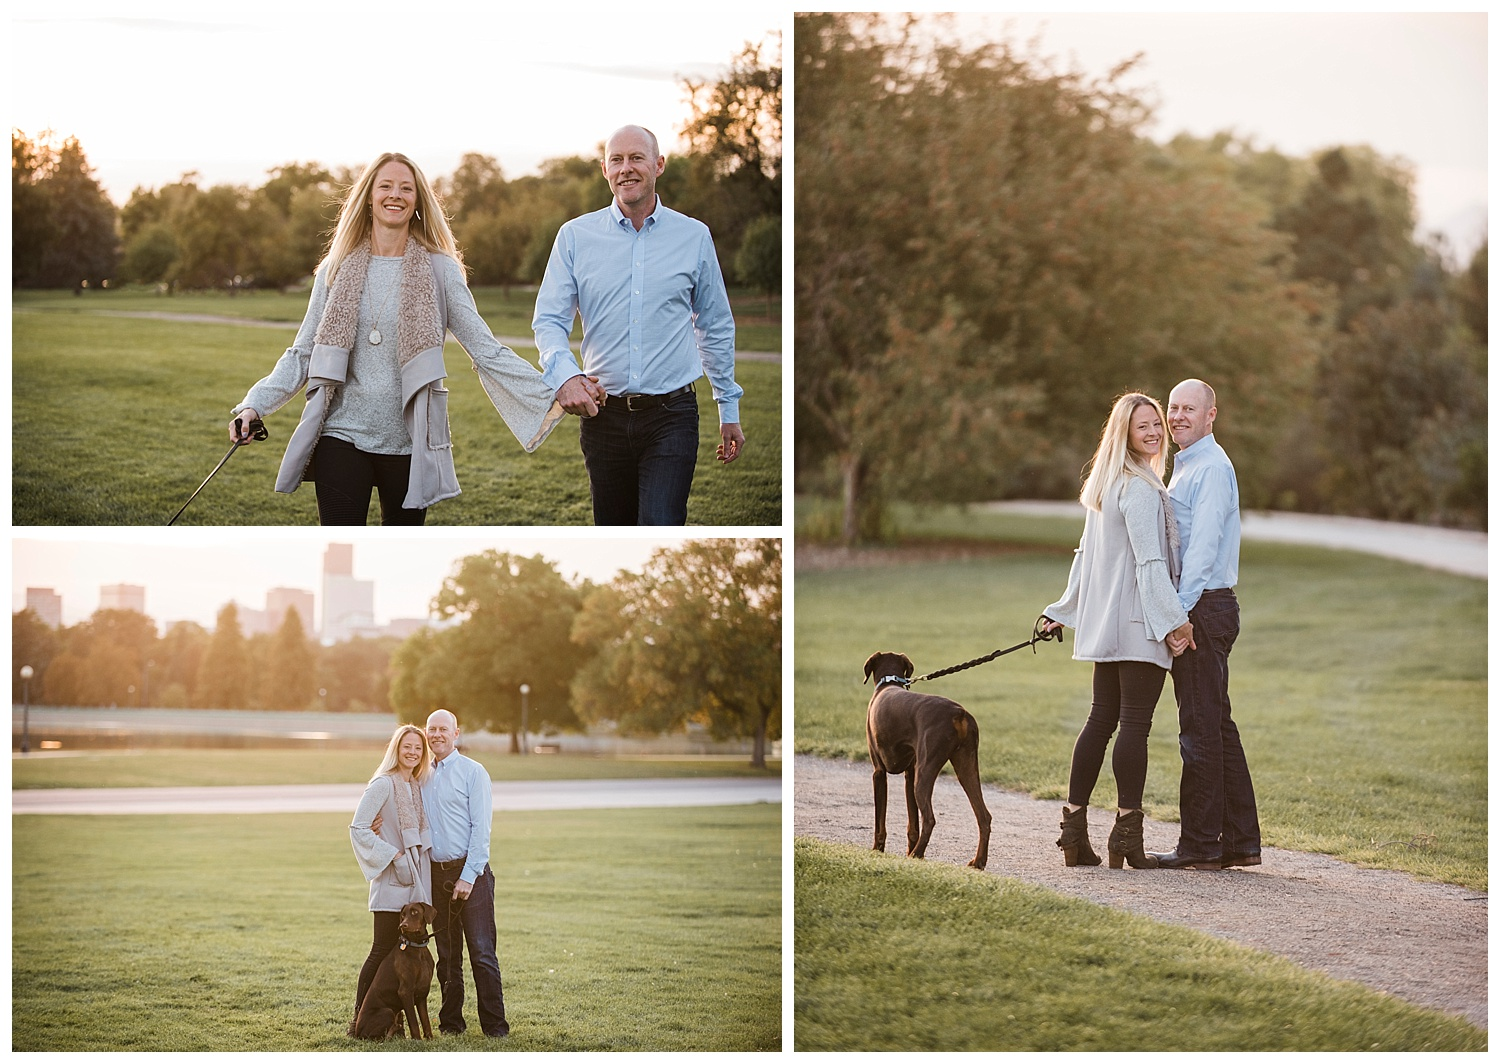 City_Park_Denver_Colorado_Engagement_Session_Apollo_Fields_Weddings_006.jpg